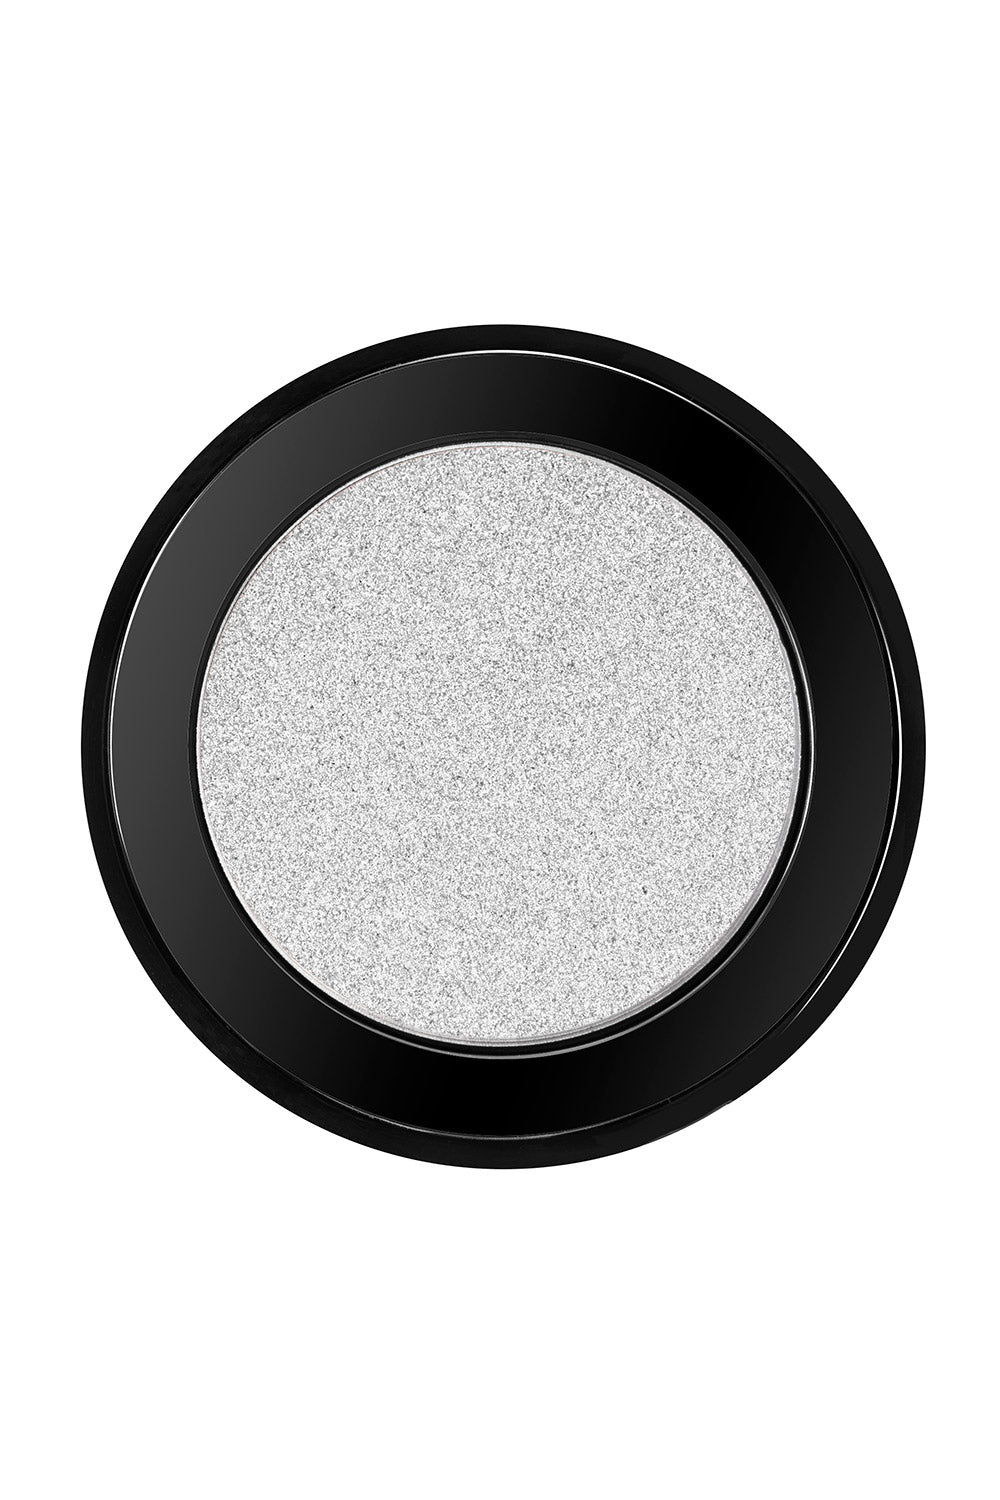 Type 2 Eyeshadow - Silver Stars